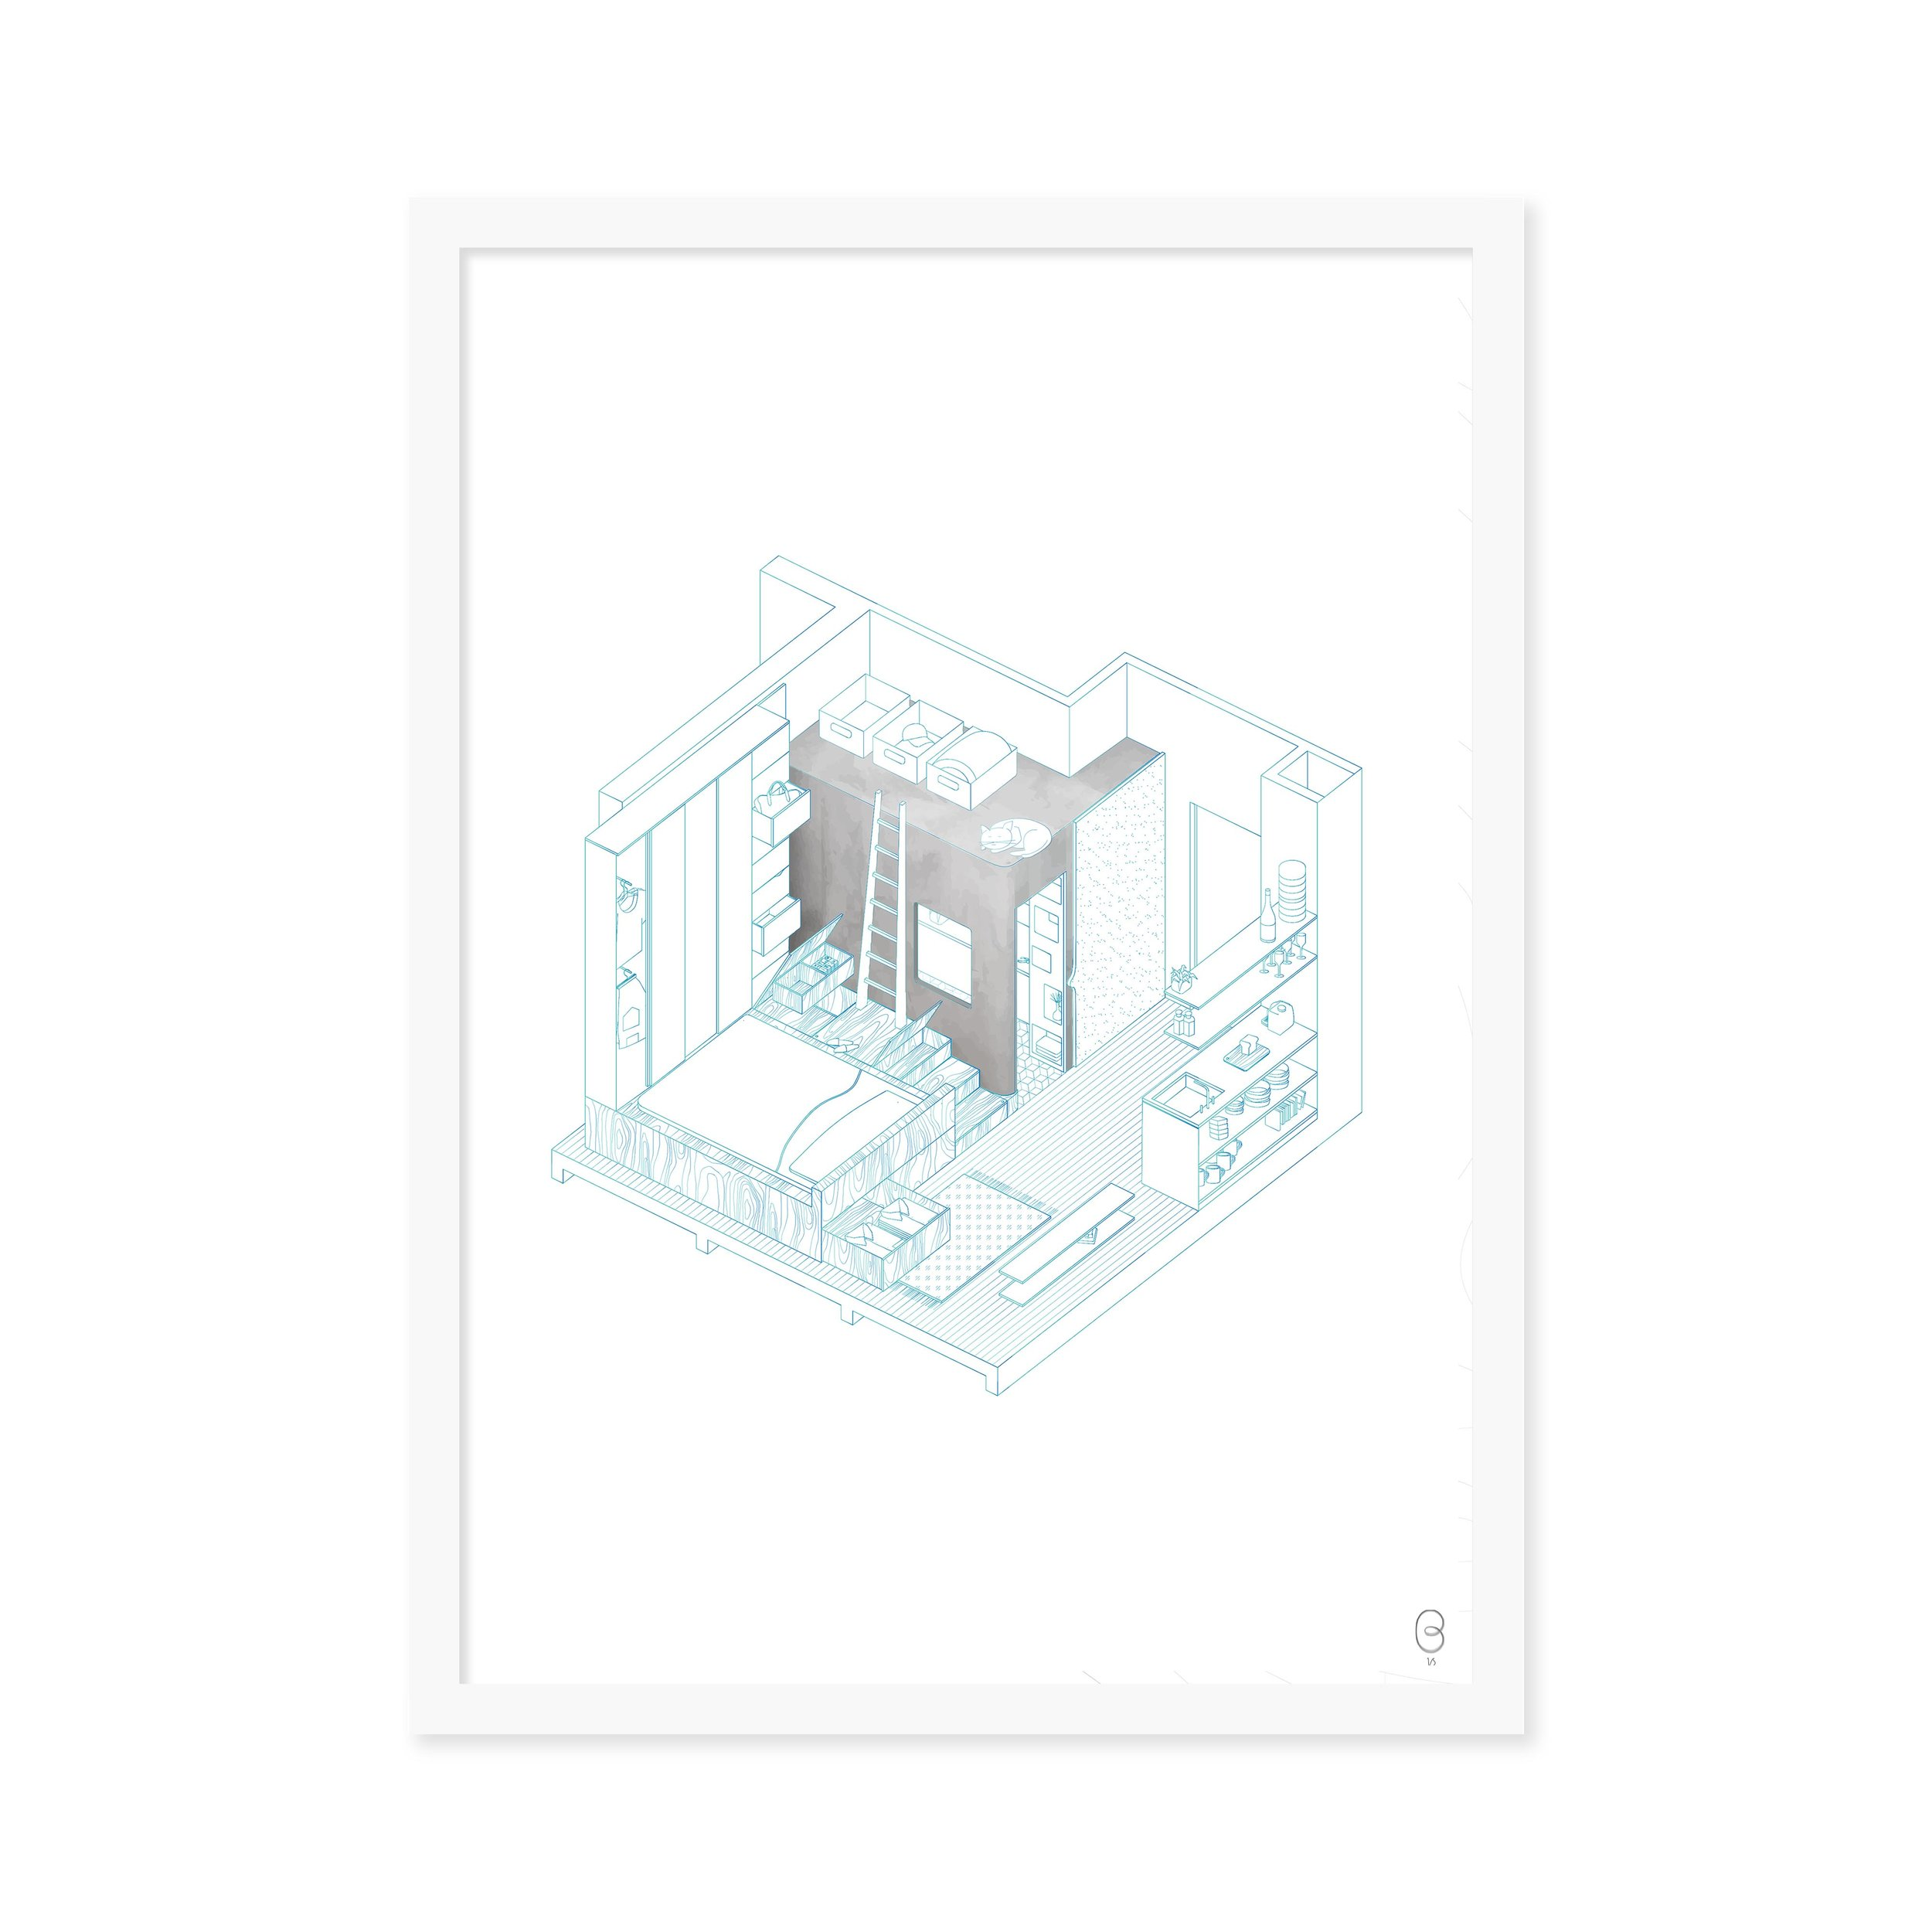 Bean Buro_Rooms by the sea_Sketch_01.jpg